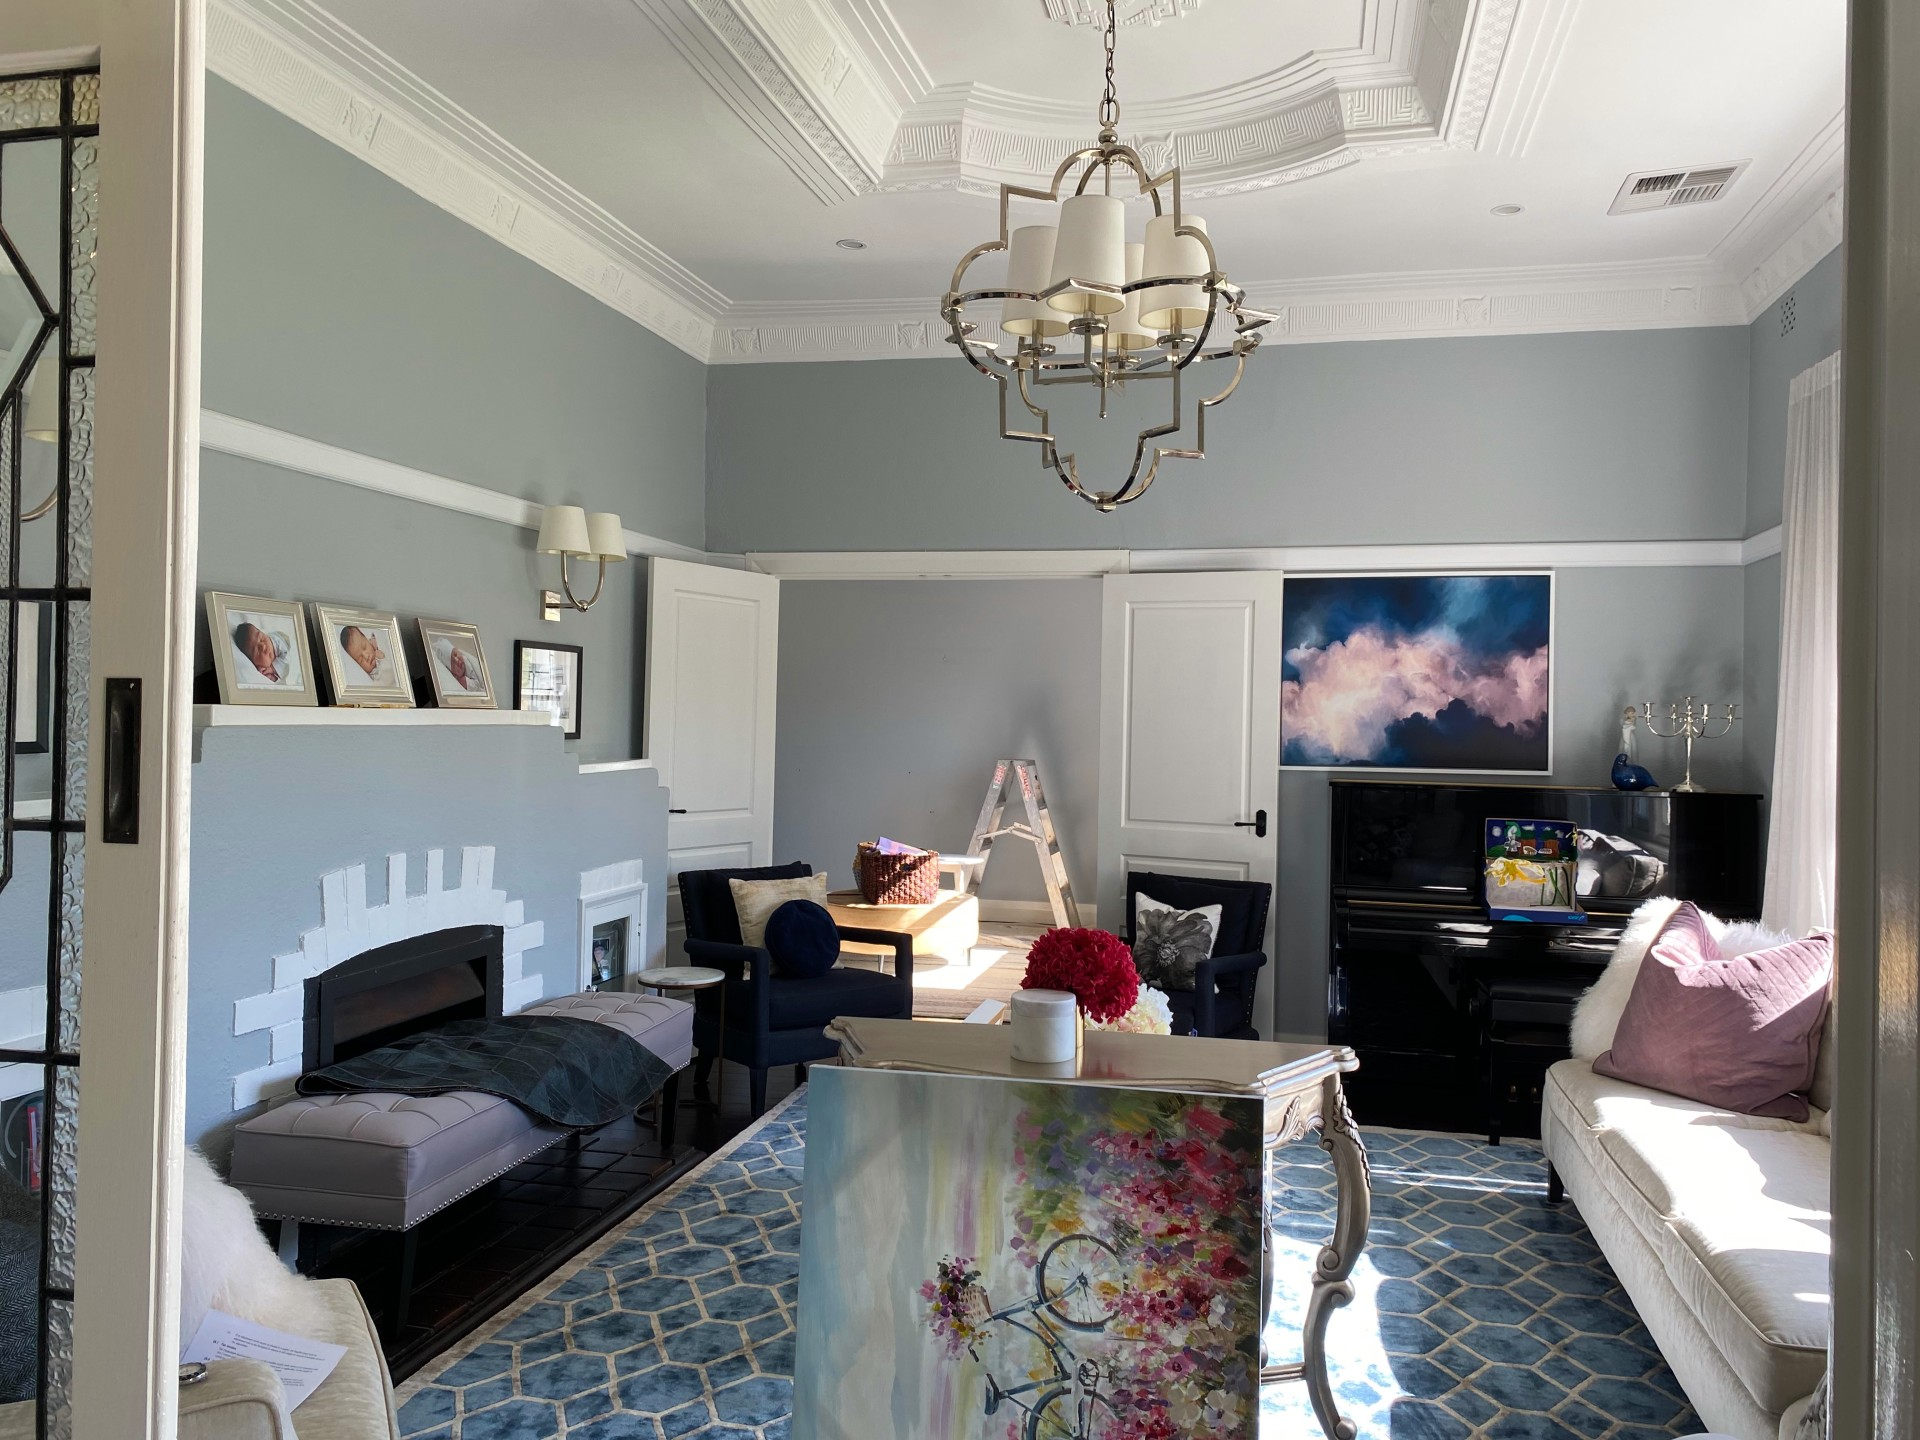 Lounge room painted